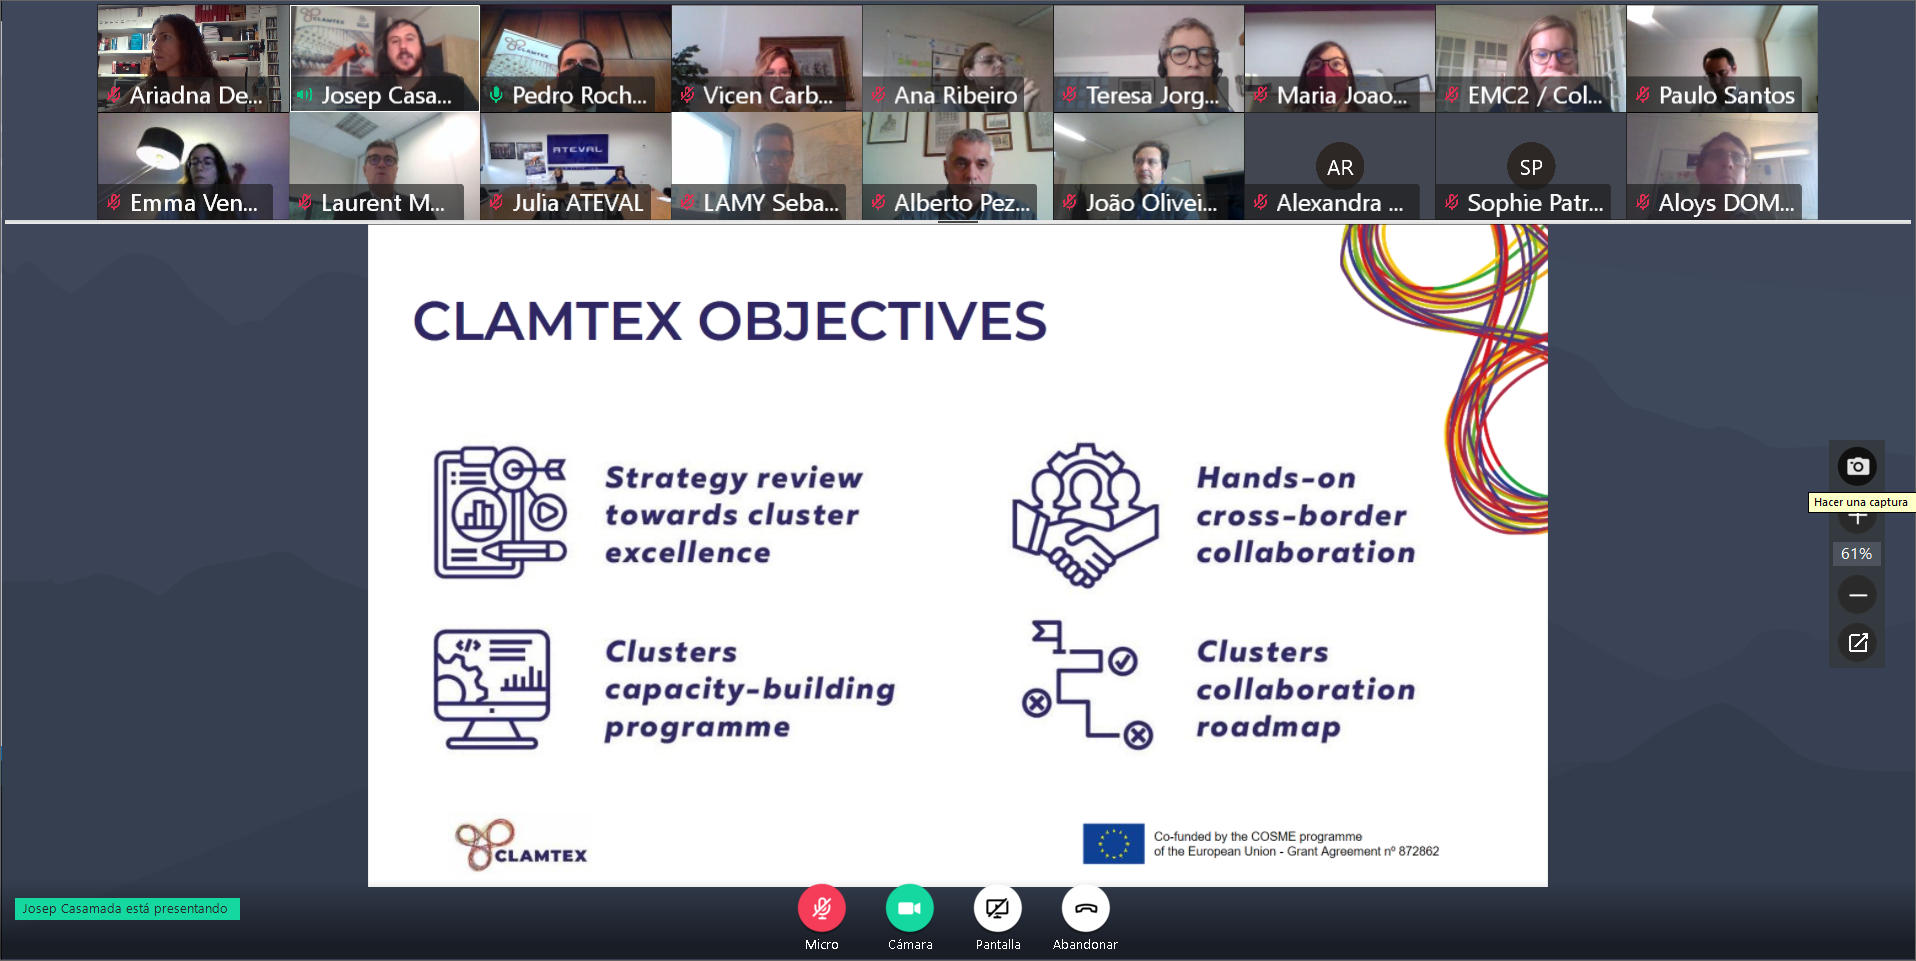 CLAMTEX S3 cross-regional roundtable